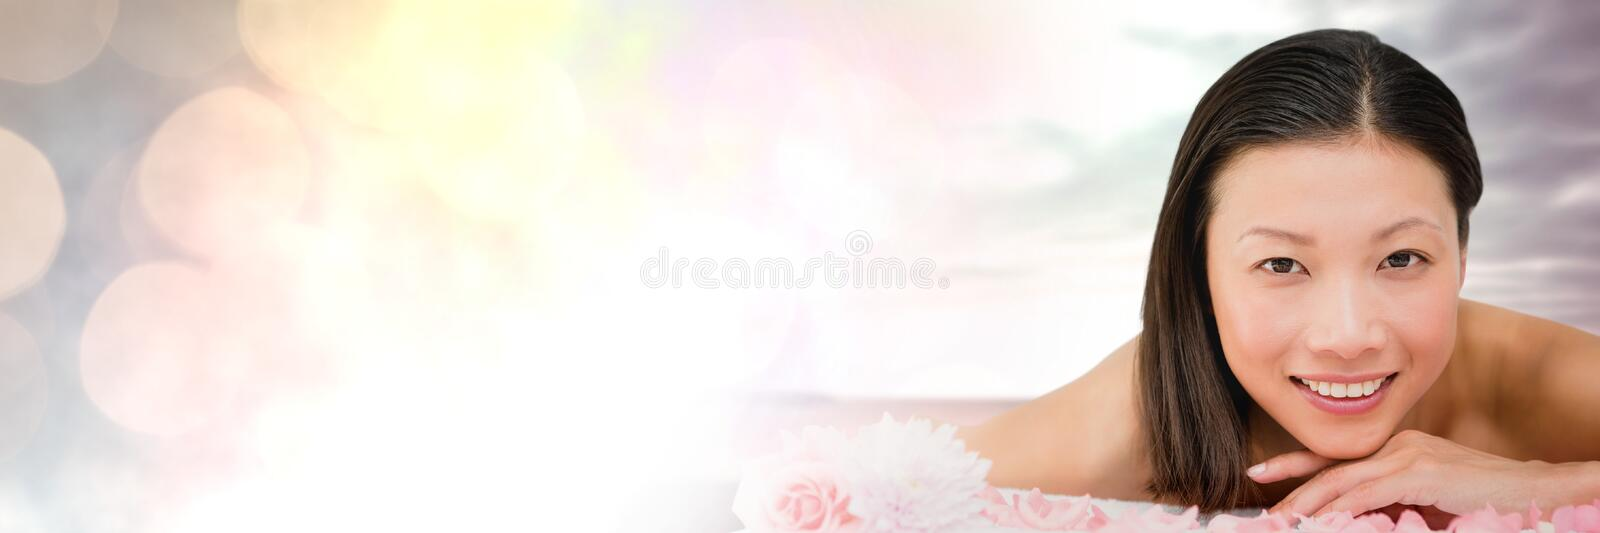 Happy spa woman relaxed with sky with transition royalty free stock images